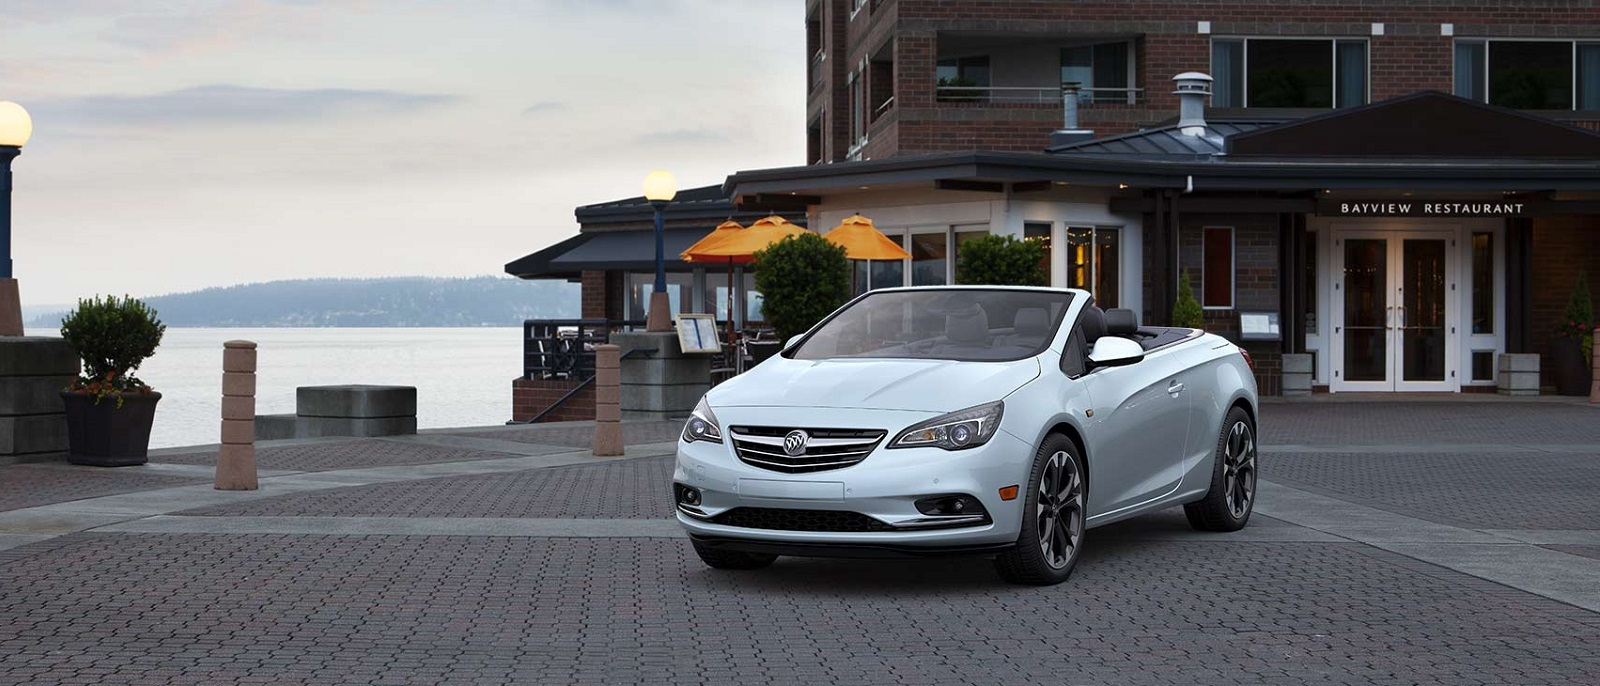 The 2017 Buick Cascada Redesign Coming To Troy And Dayton New 2021 Buick Cascada Inventory, Images, Incentives